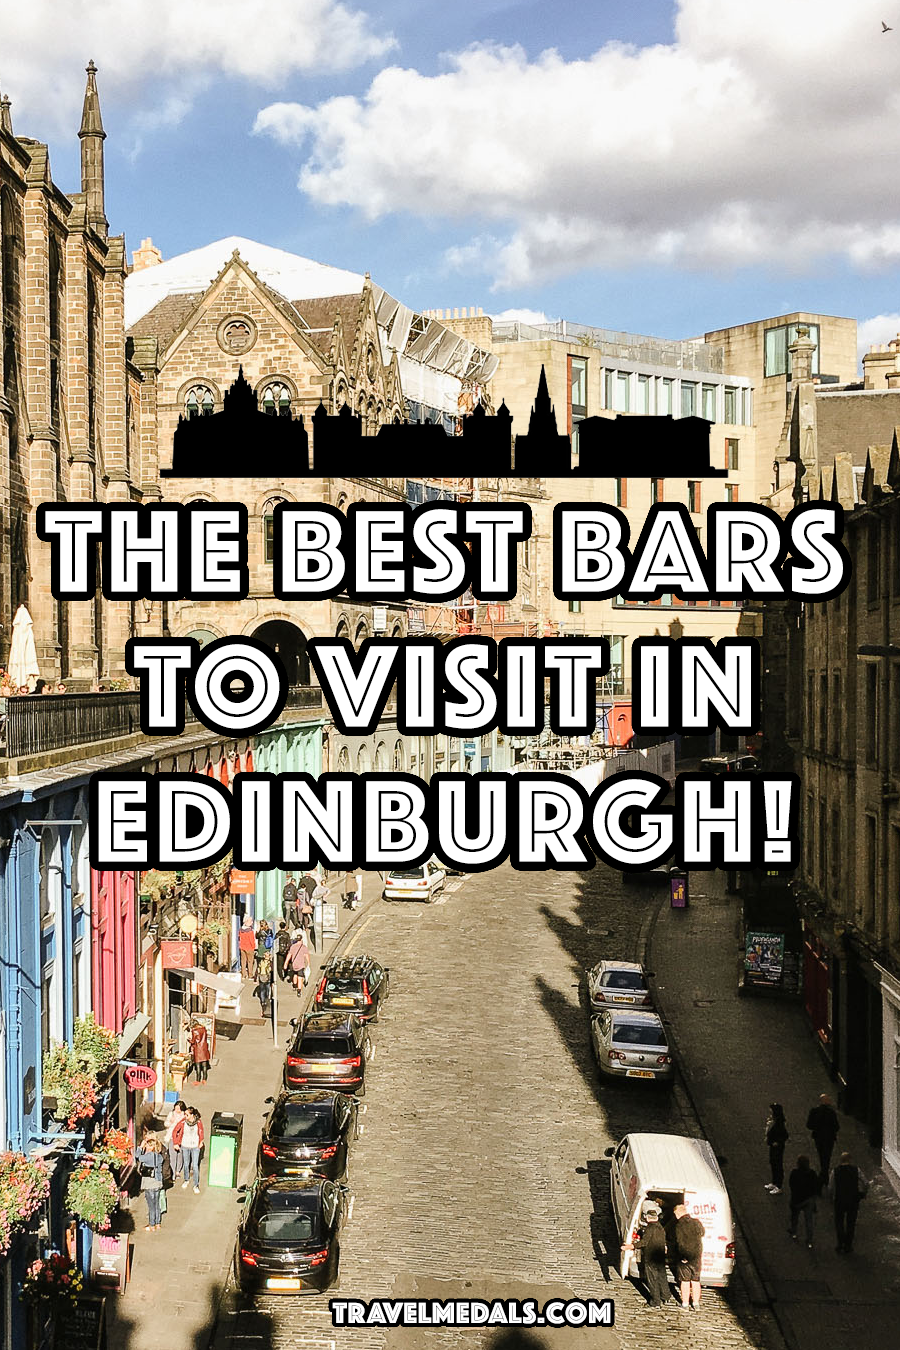 The Top Bars In Edinburgh, Scotland! - Travel Medals